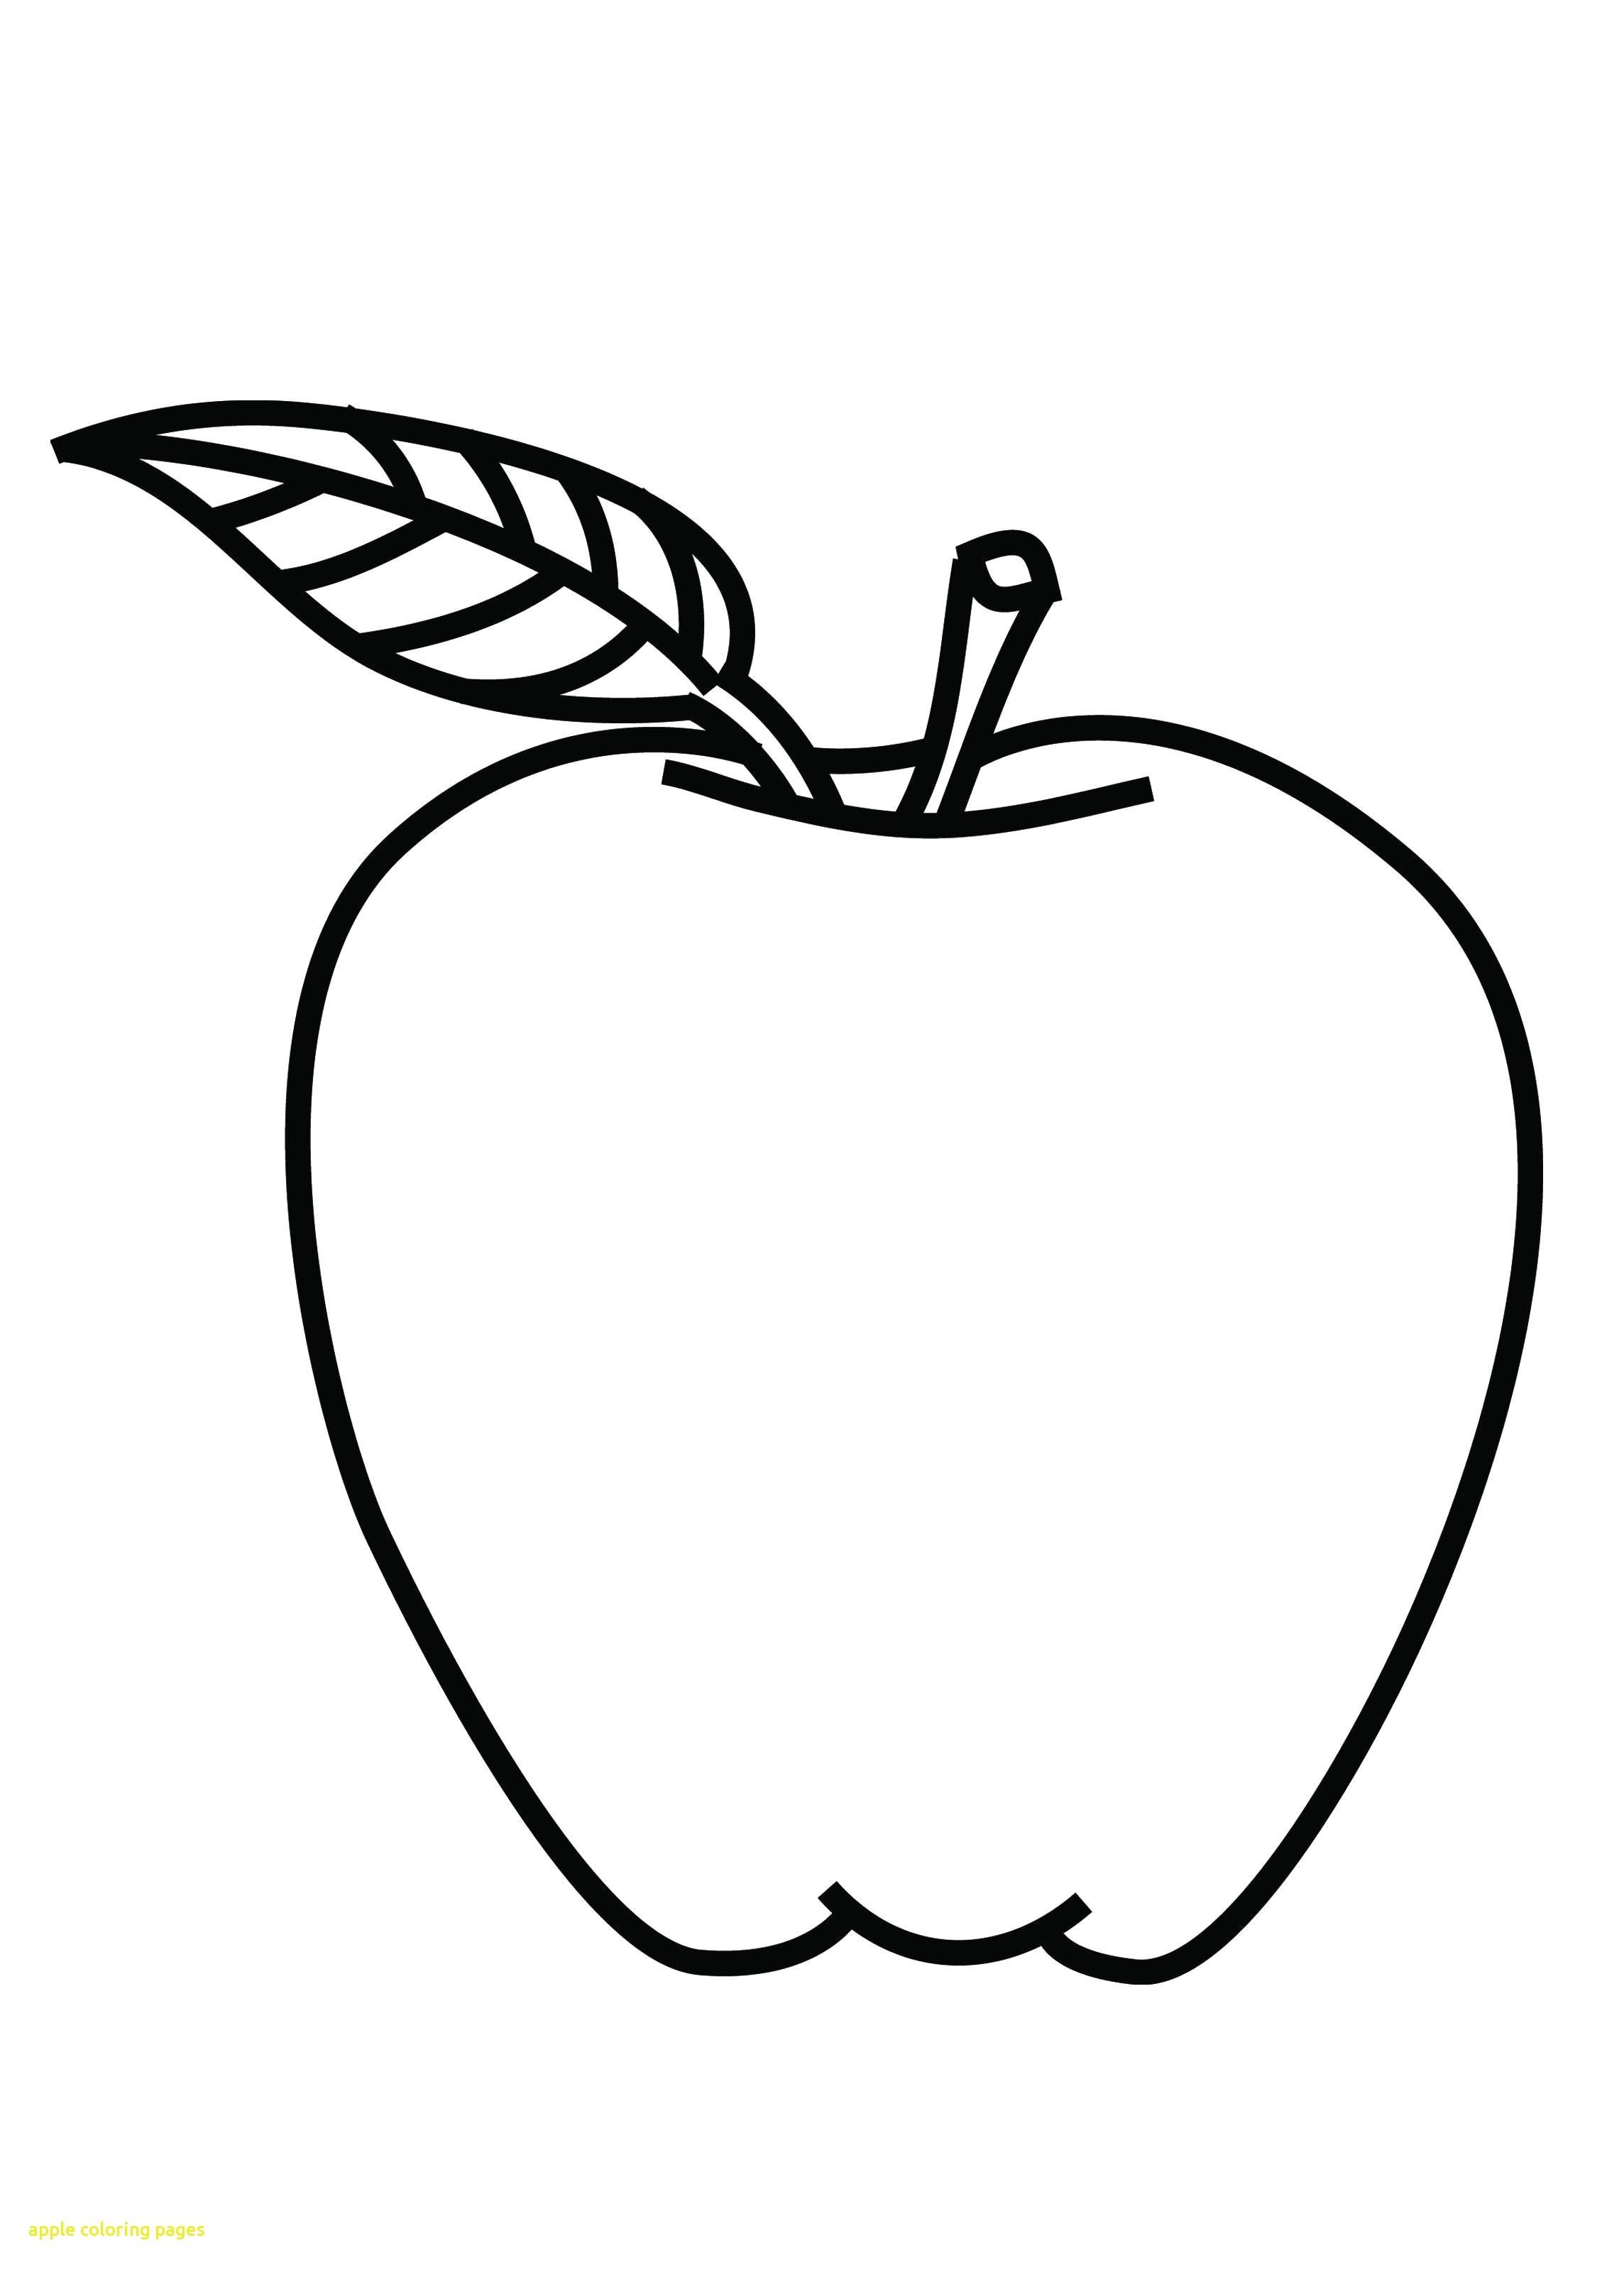 A Is For Apple Coloring Page Coloring Page Apple Coloring Pages Fruit Coloring Pages Apple Picture